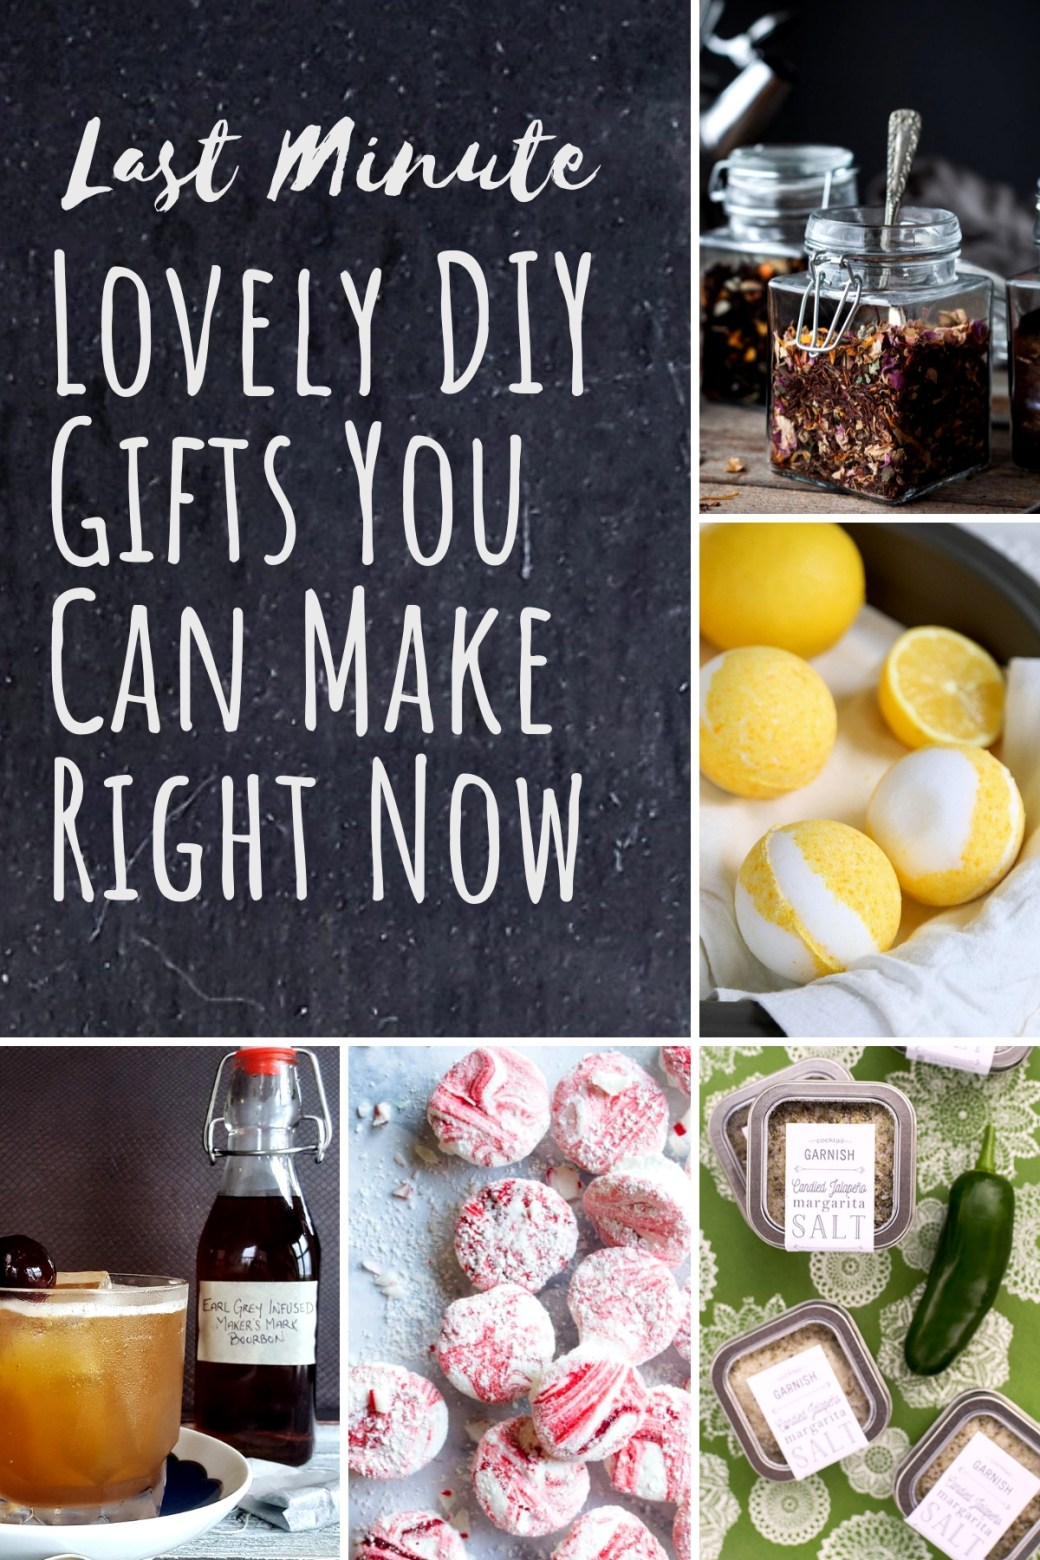 Last Minute Lovely DIY Gifts You Can Make Right Now